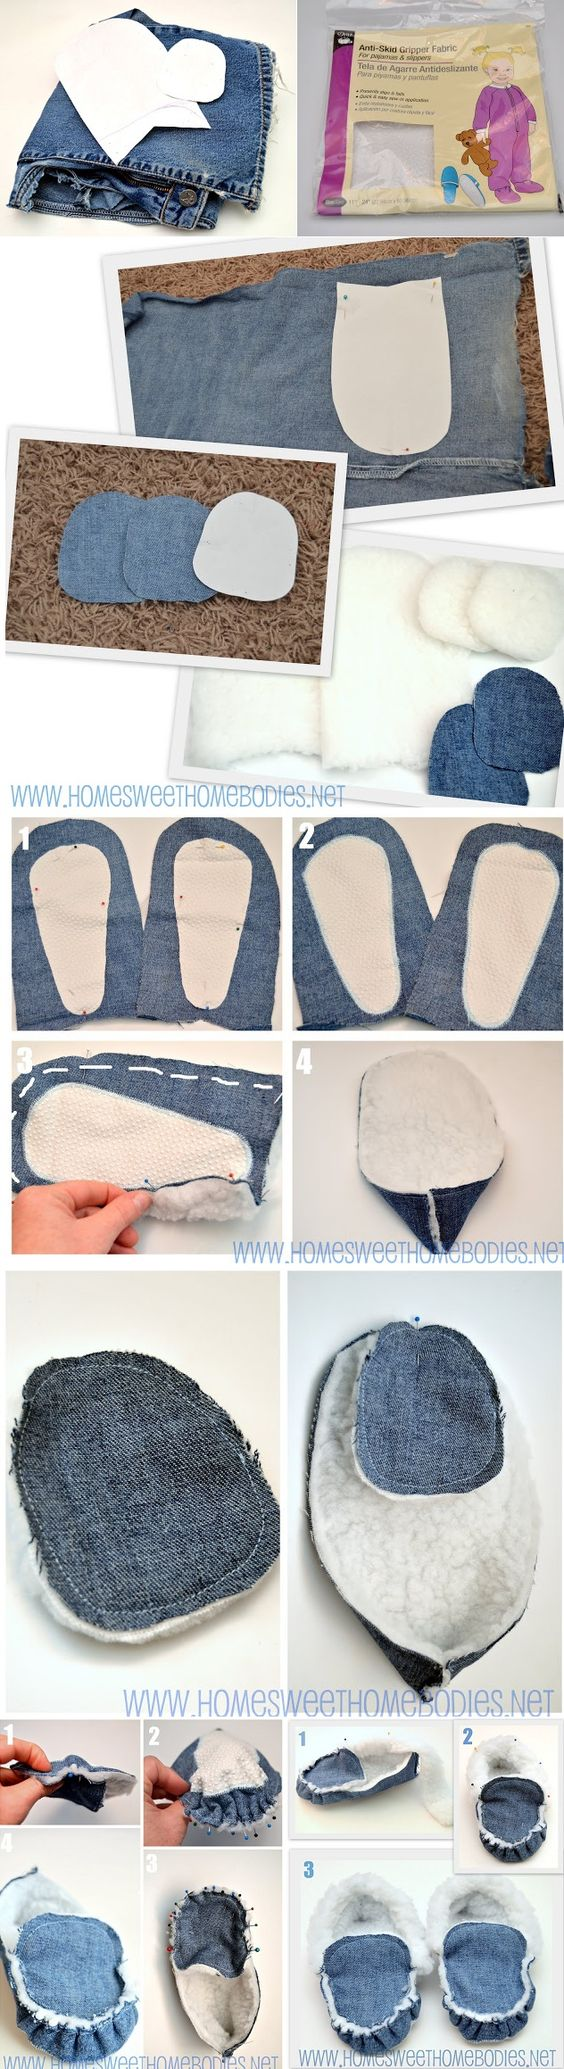 Acogedora Denim Zapatilla-Mocasines - DIY: